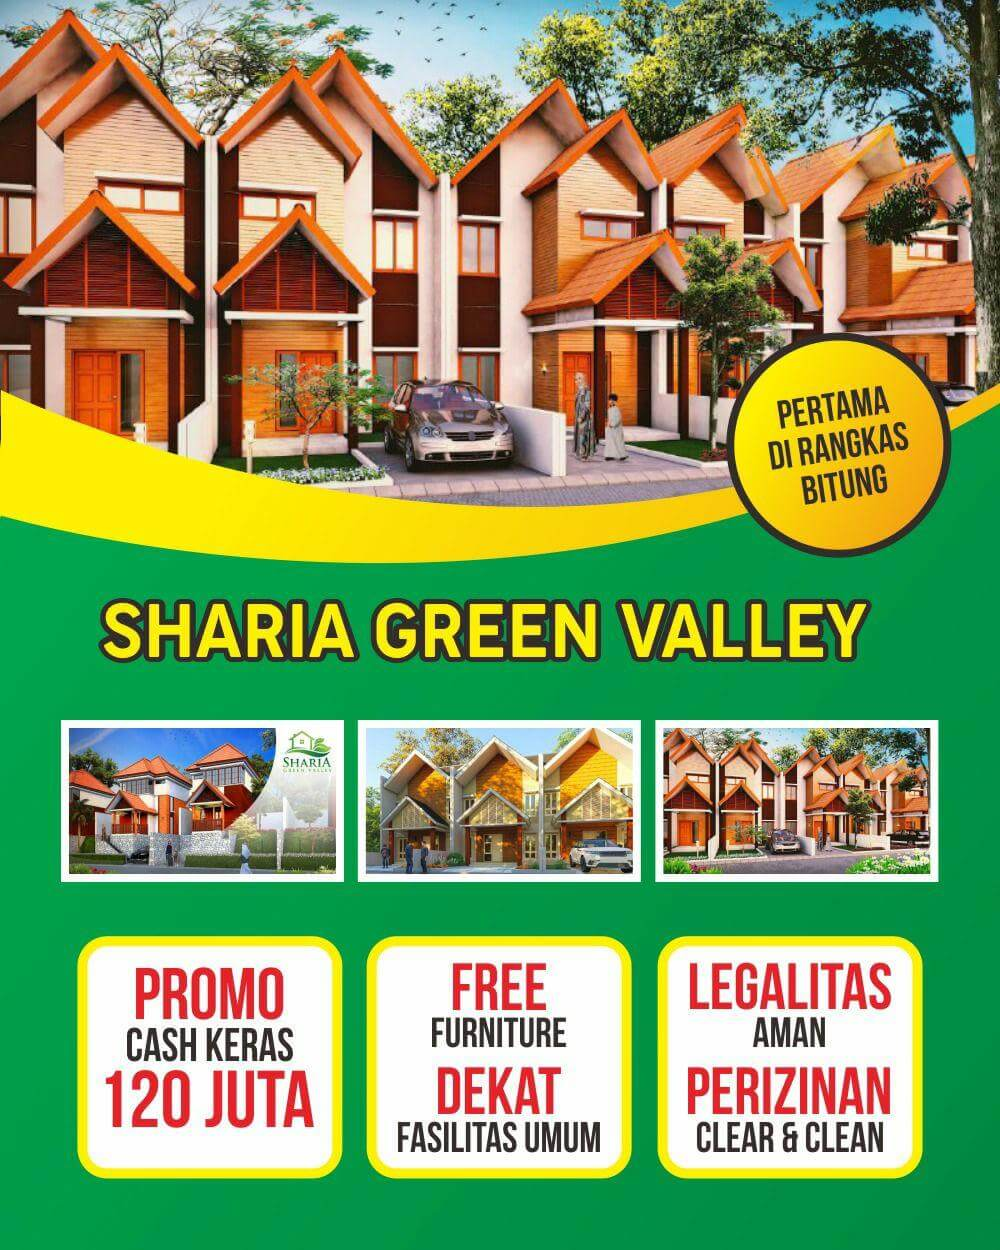 Sharia Green Valley